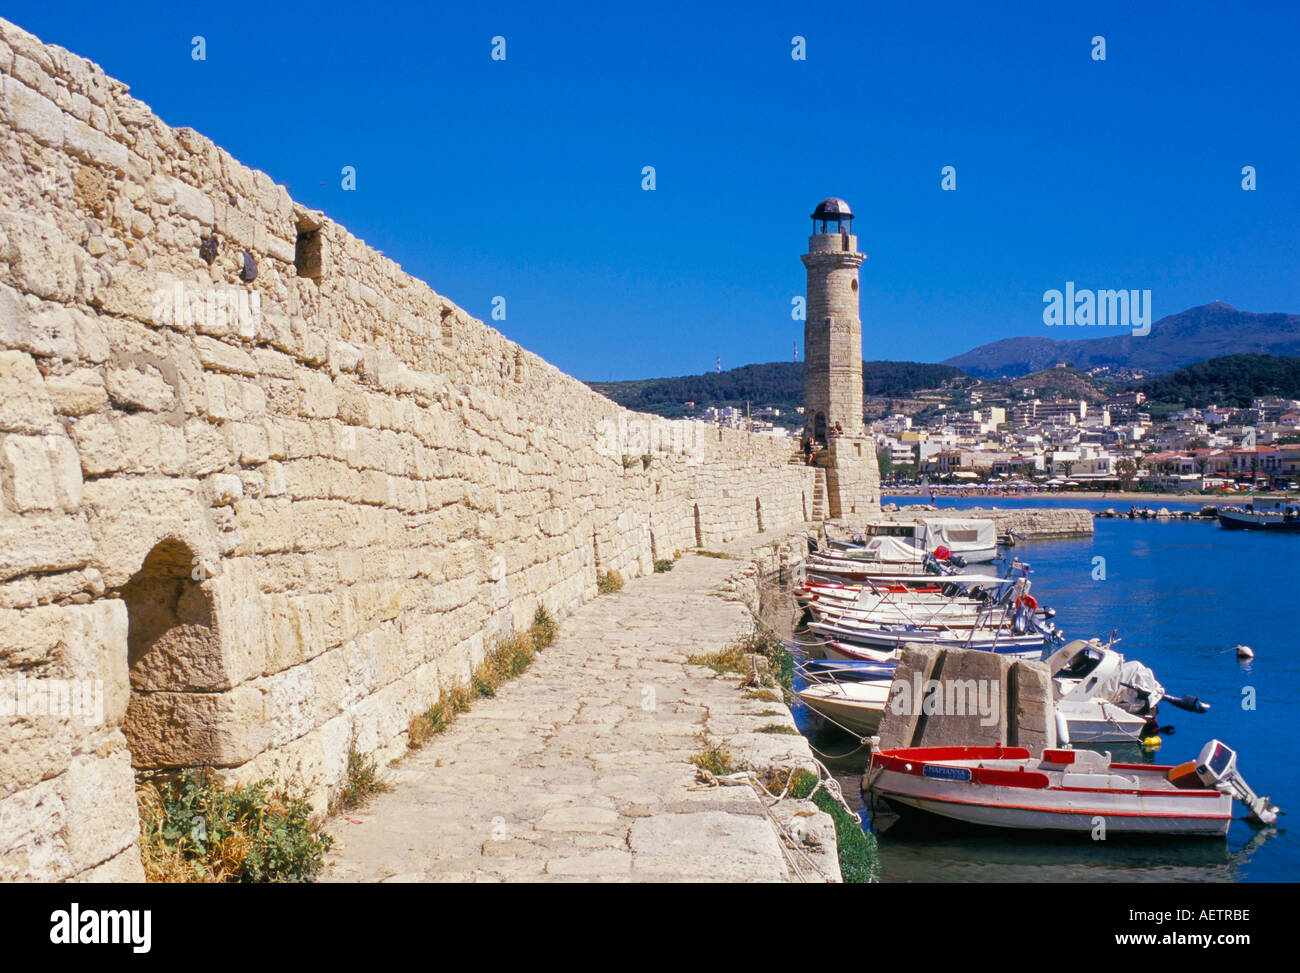 View of old Venetian Rethymo s lighthouse wall and harbours Rethymno Rethymnon island of Crete Greece Mediterraneann Europe - Stock Image